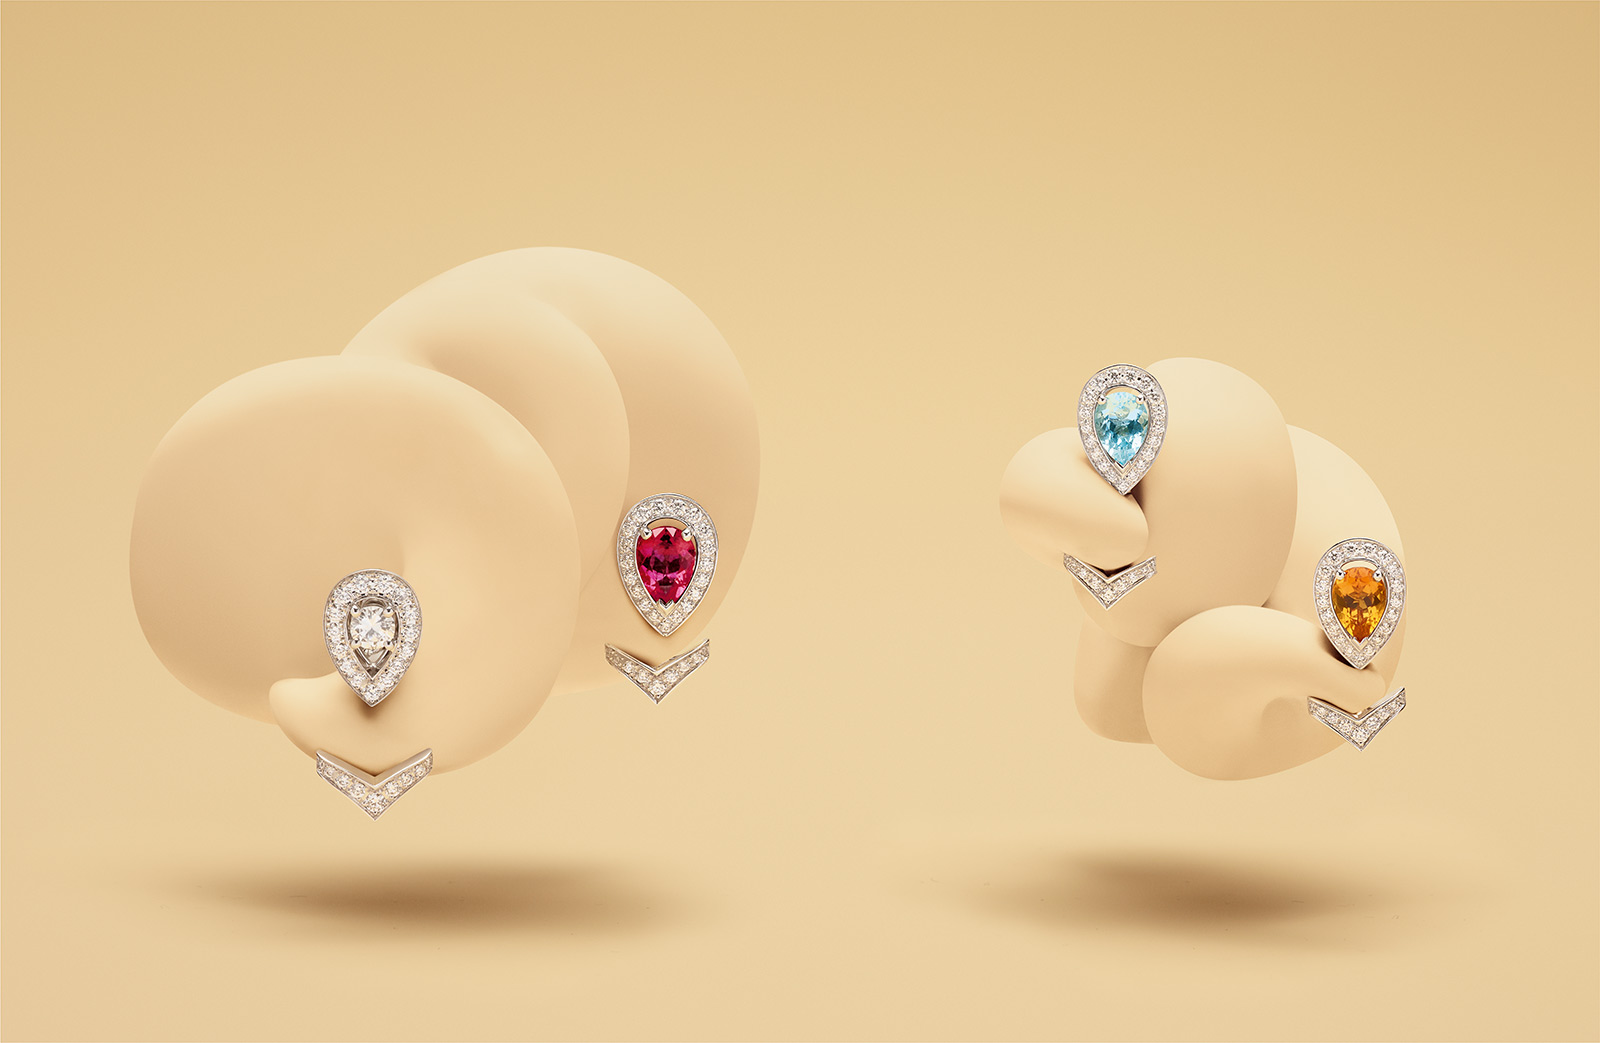 Chaumet 'Joséphine Aigrette' earrings and jackets with 0.60ct of; rhodolite garnet, aquamarine and citrine, all with diamonds